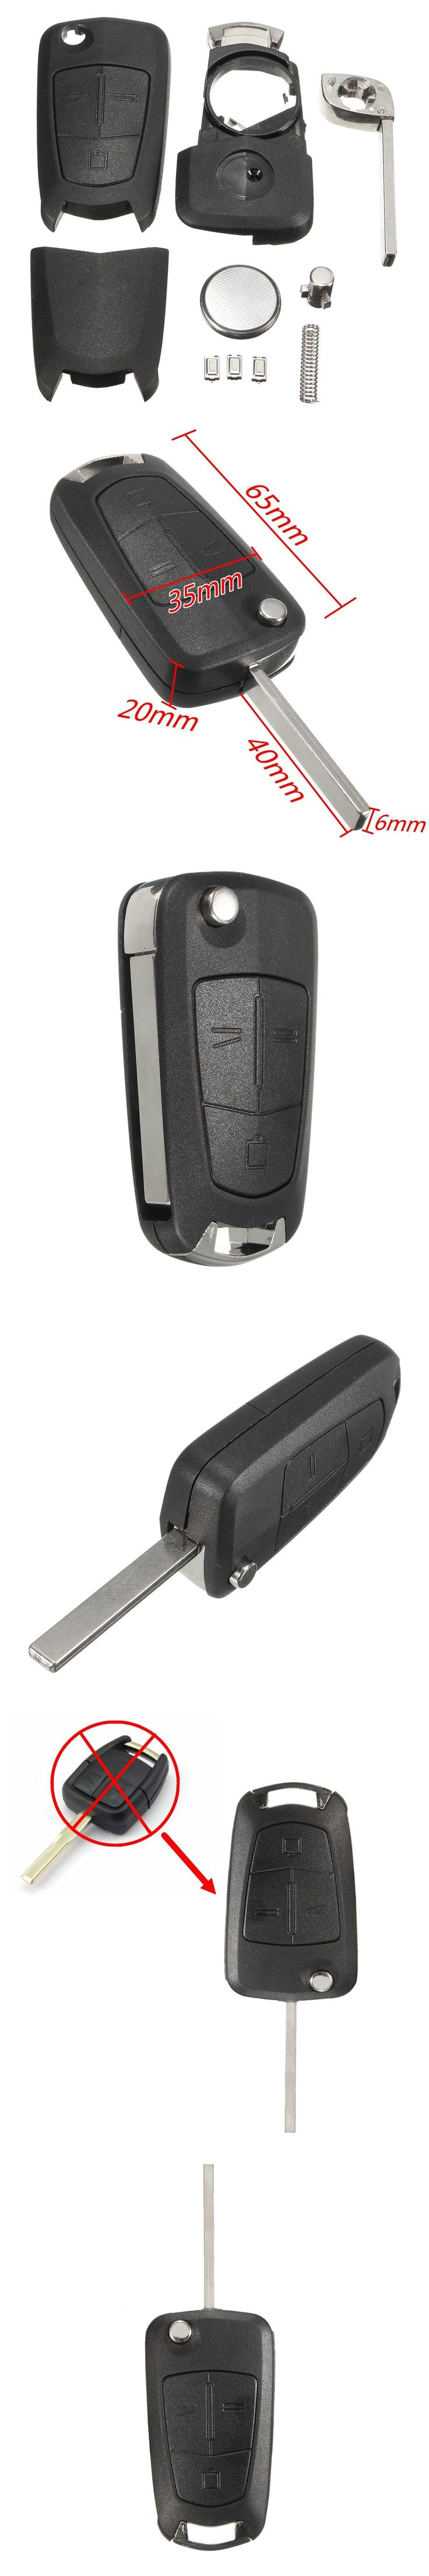 3 Buttons Switches Remote Flip Key Fob Case For Vauxhall /Opel /Corsa /Astra /Vectra